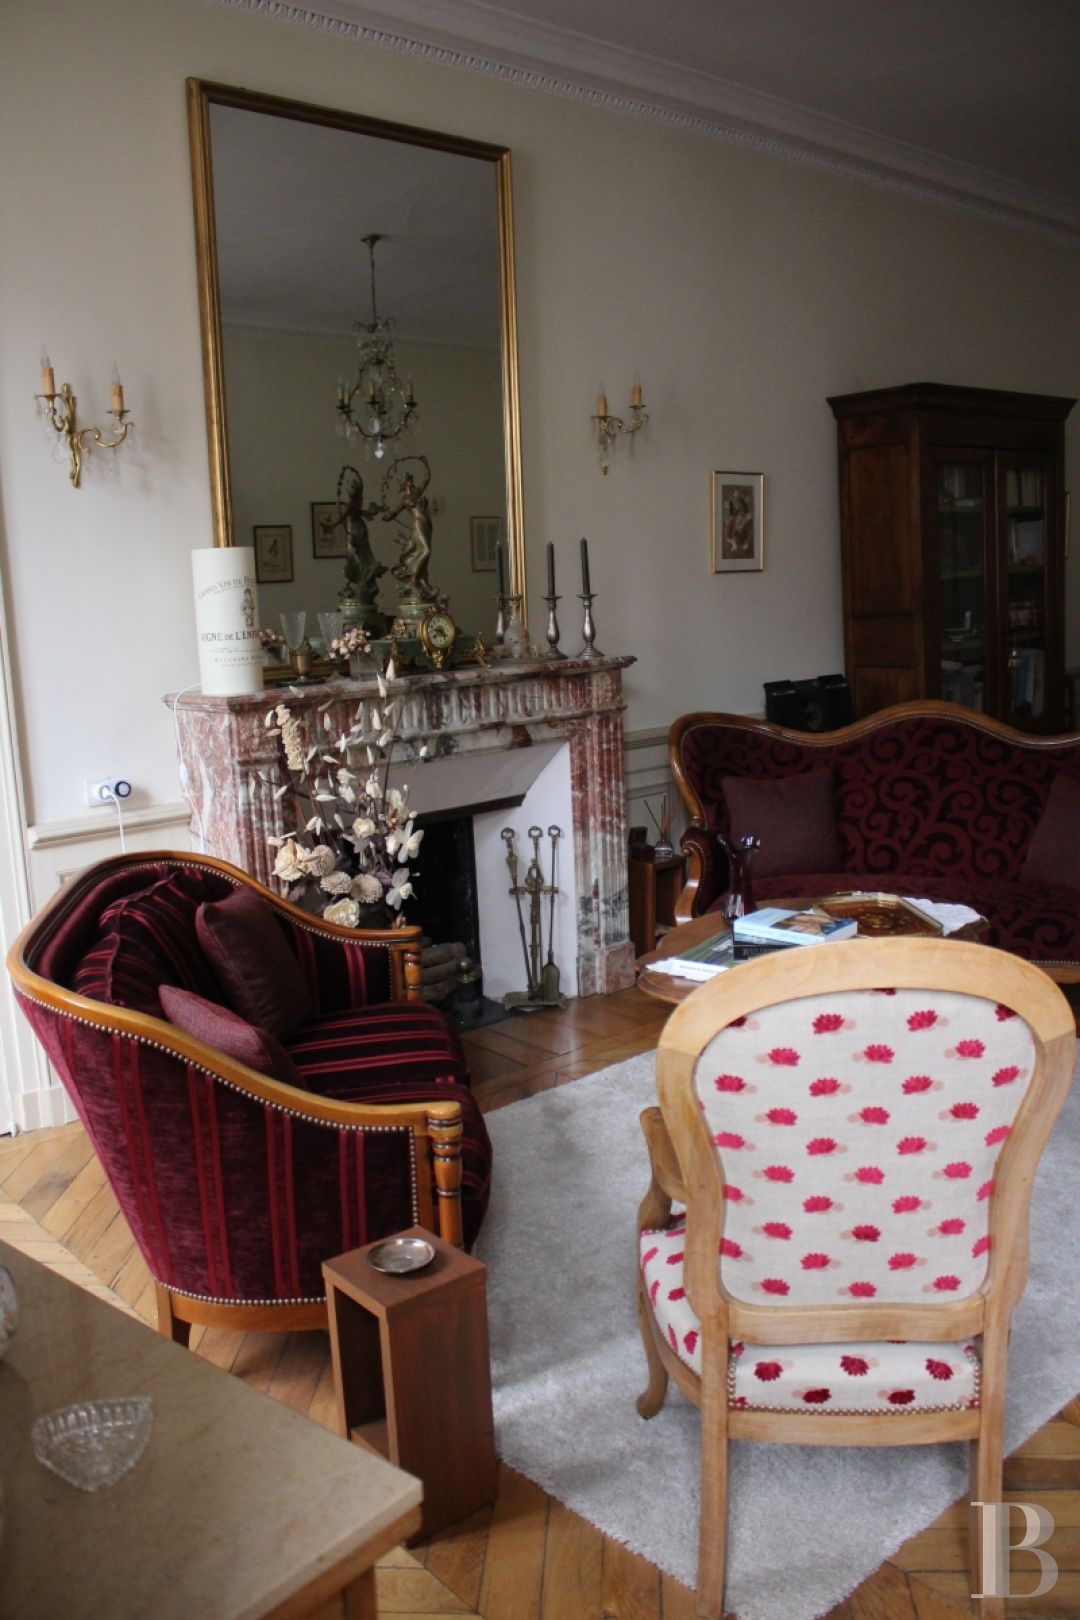 immobilier prestige bourgogne hotel particulier - 4 zoom